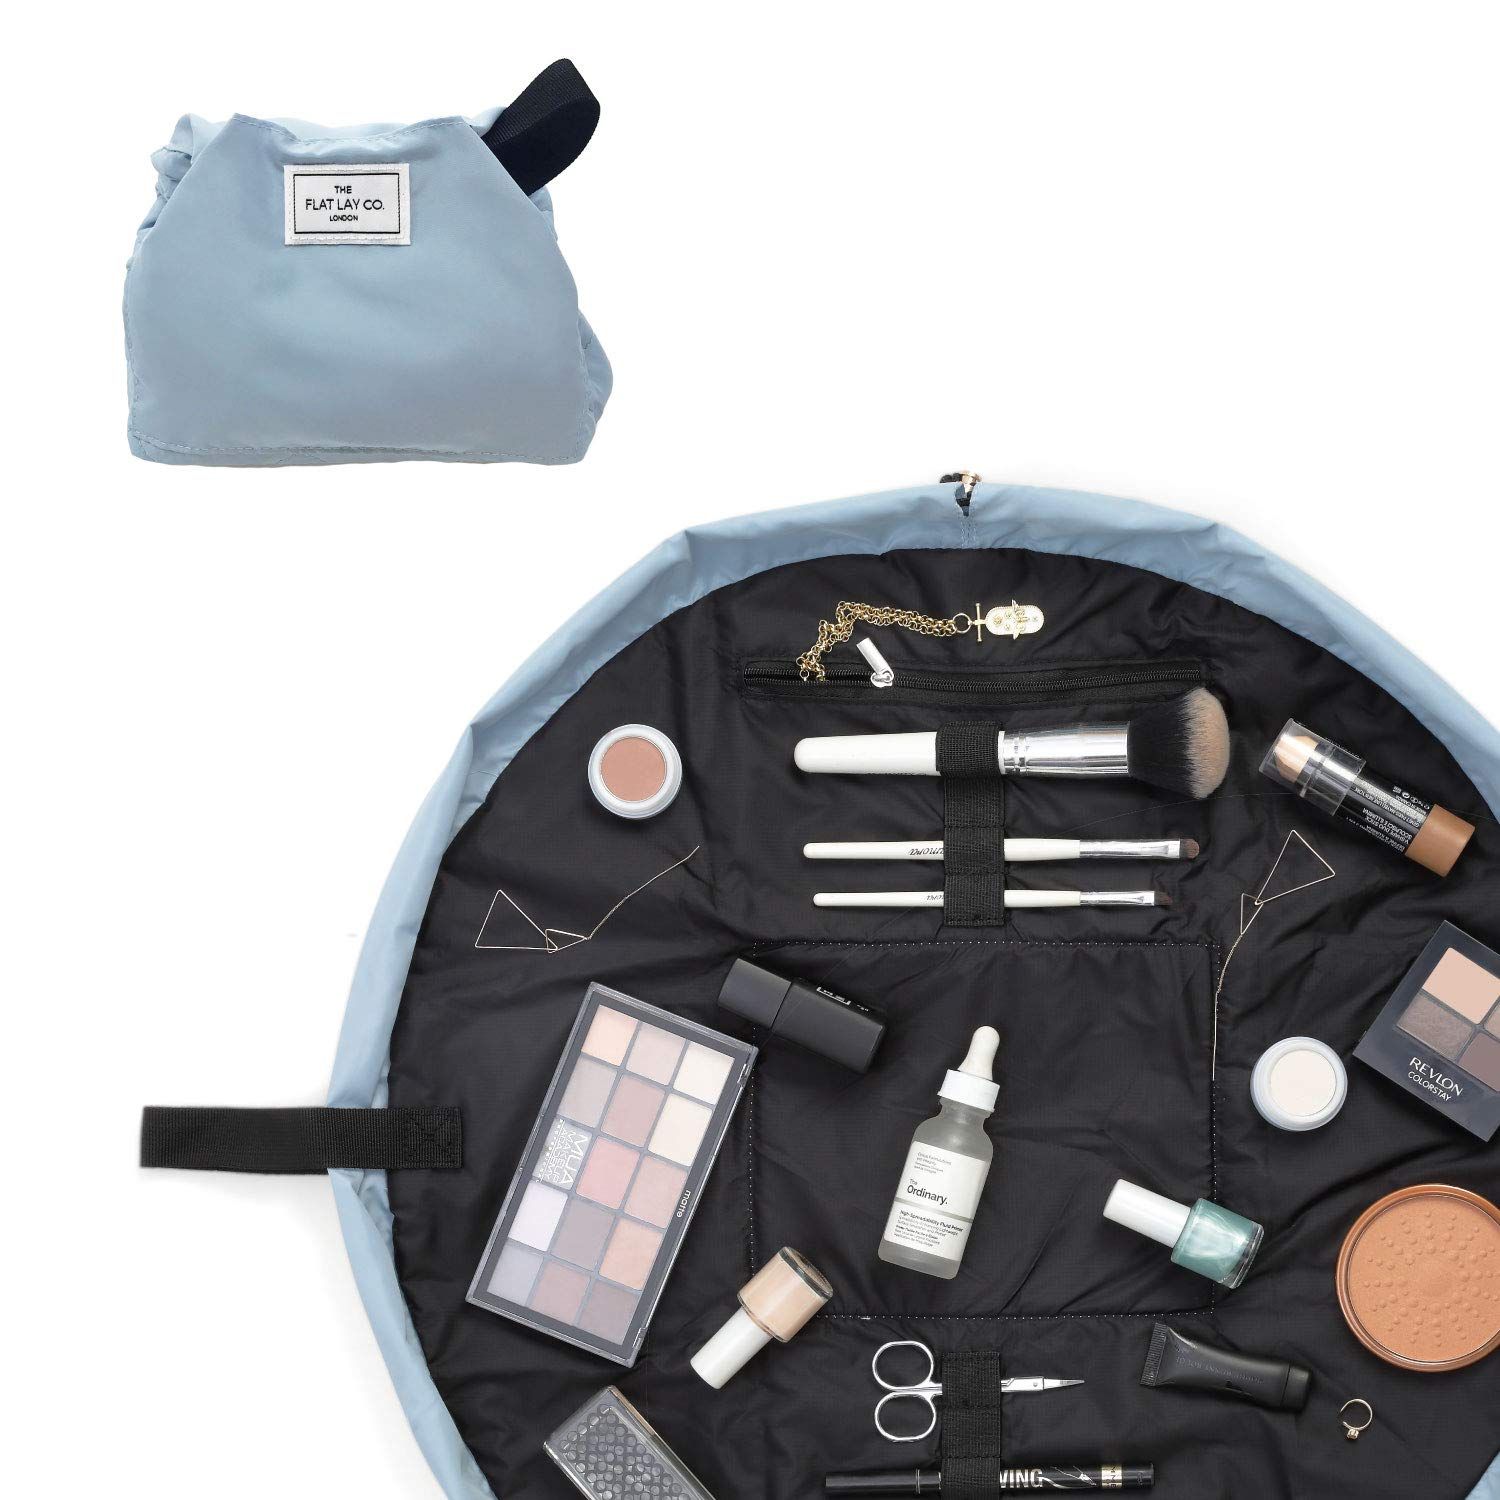 94d0a0bfaea5 The Flat Lay Co. Make Up Bag | Lay Flat Travel Cosmetic Toiletry Case |  Contents not included (Everything | 50cm, Haze Blue)